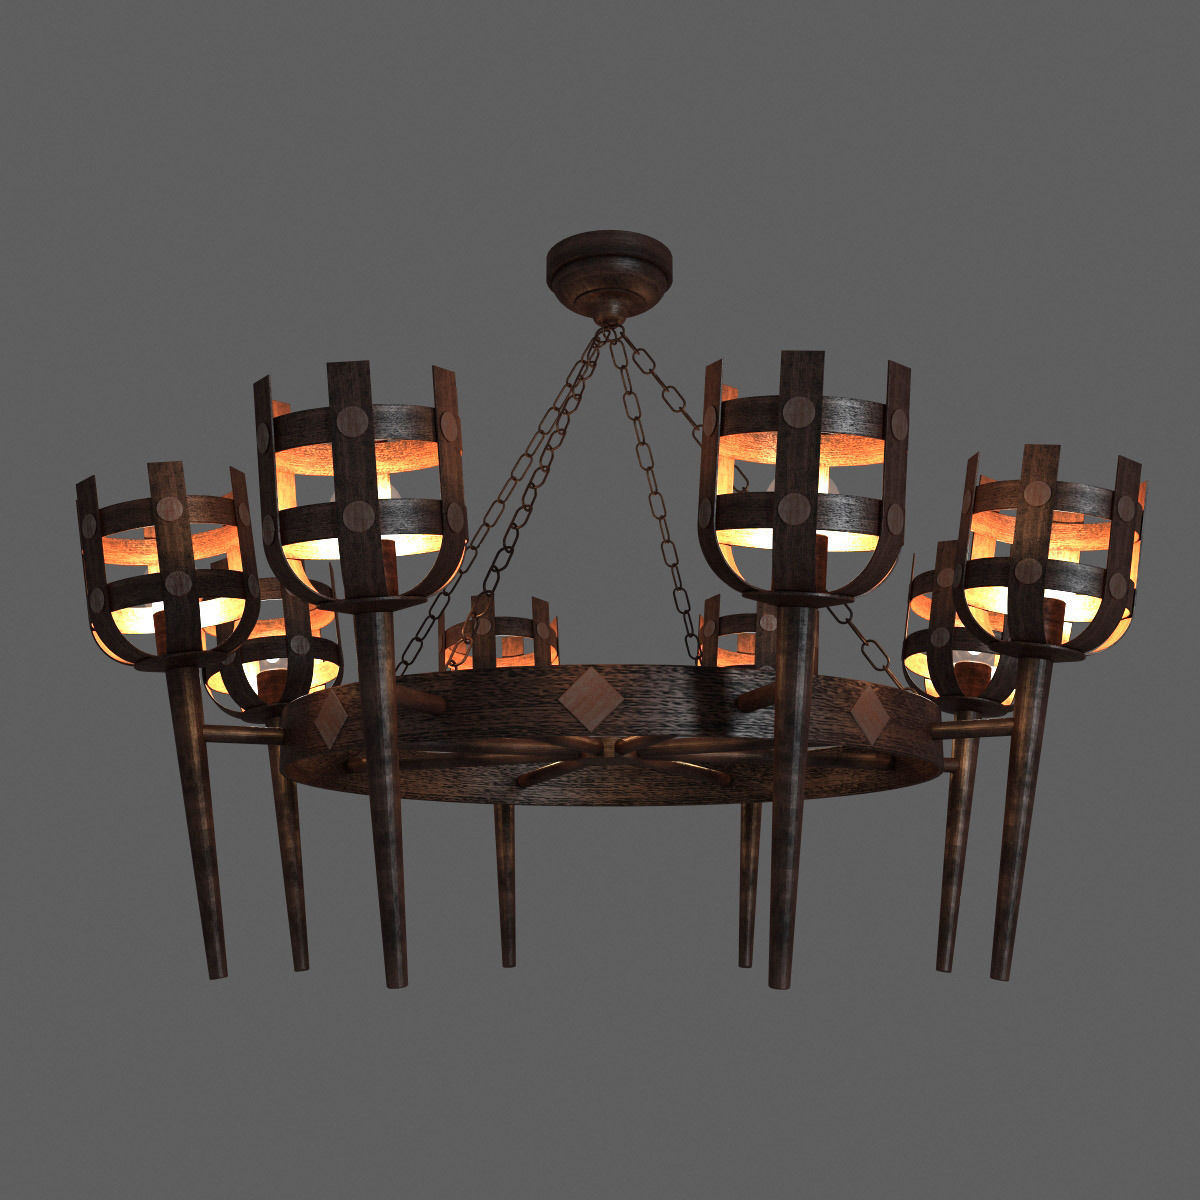 3d classic medieval rustic iron chandelier cgtrader classic medieval rustic iron chandelier 3d model max obj 3ds fbx mtl 1 aloadofball Image collections